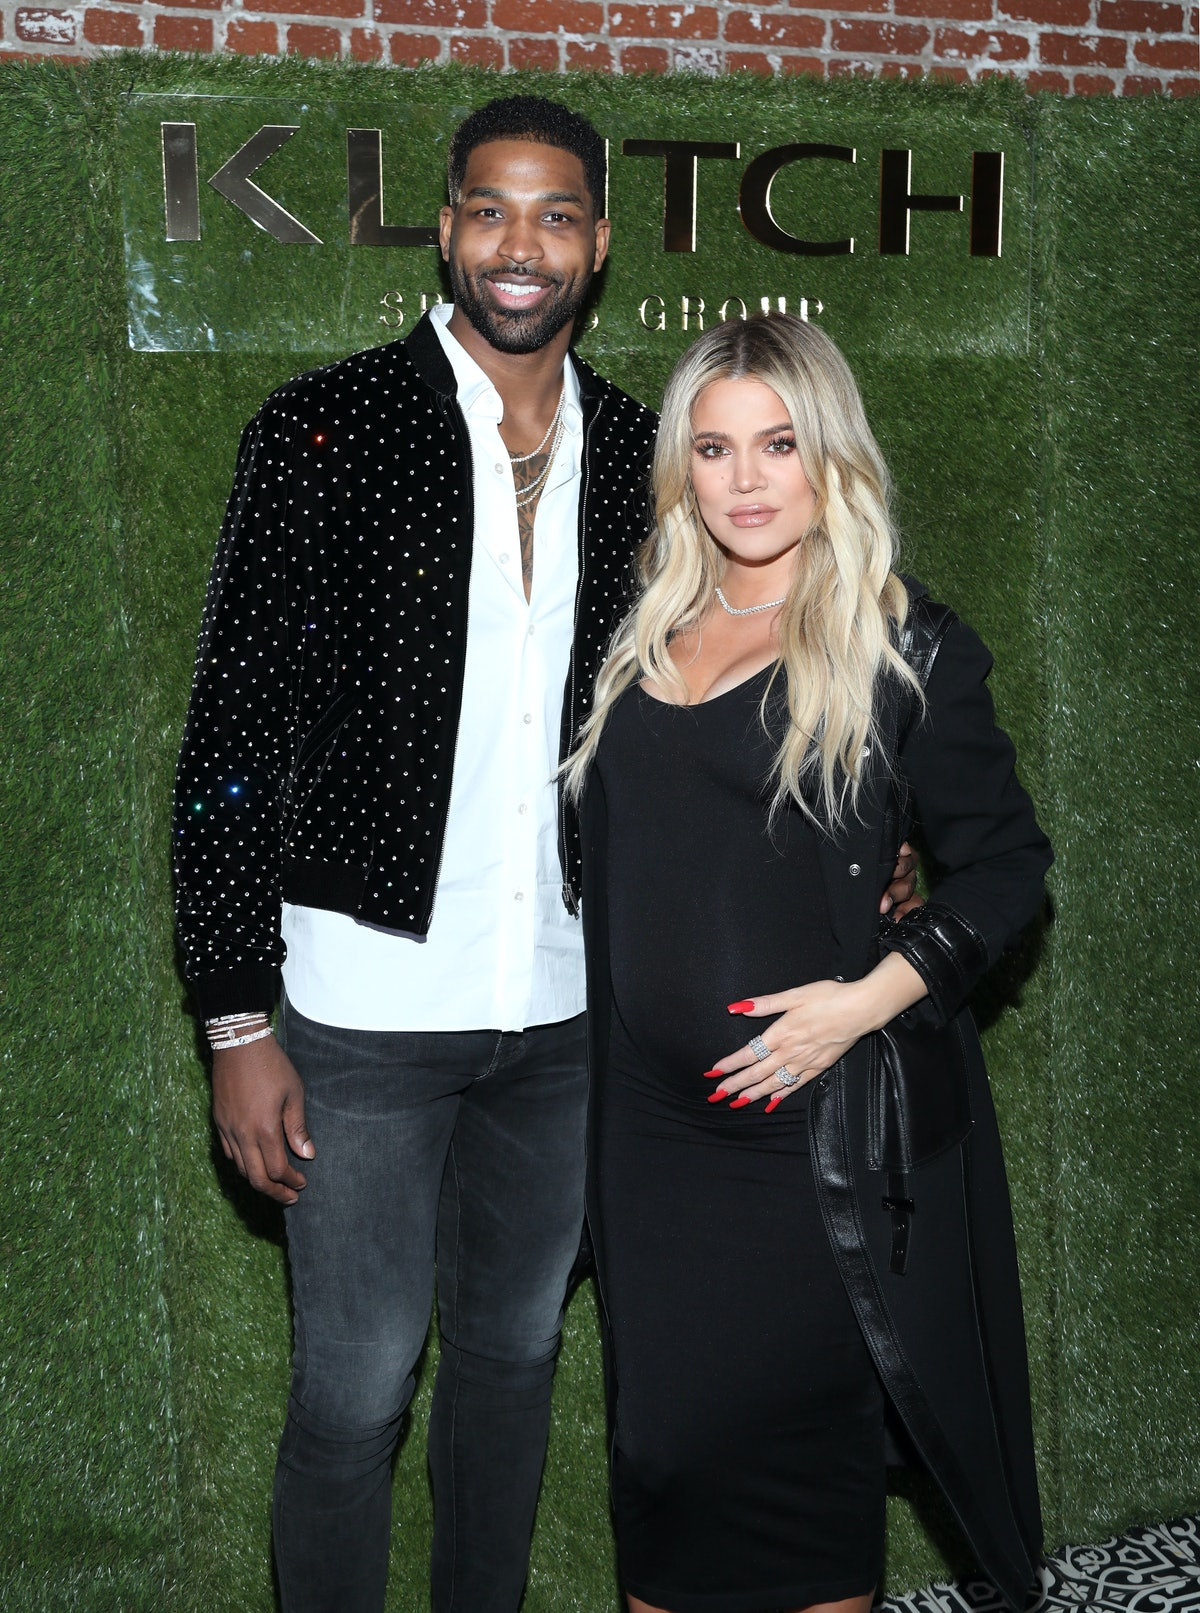 Khloé Kardashian might not be too pleased with Tristan Thompson.